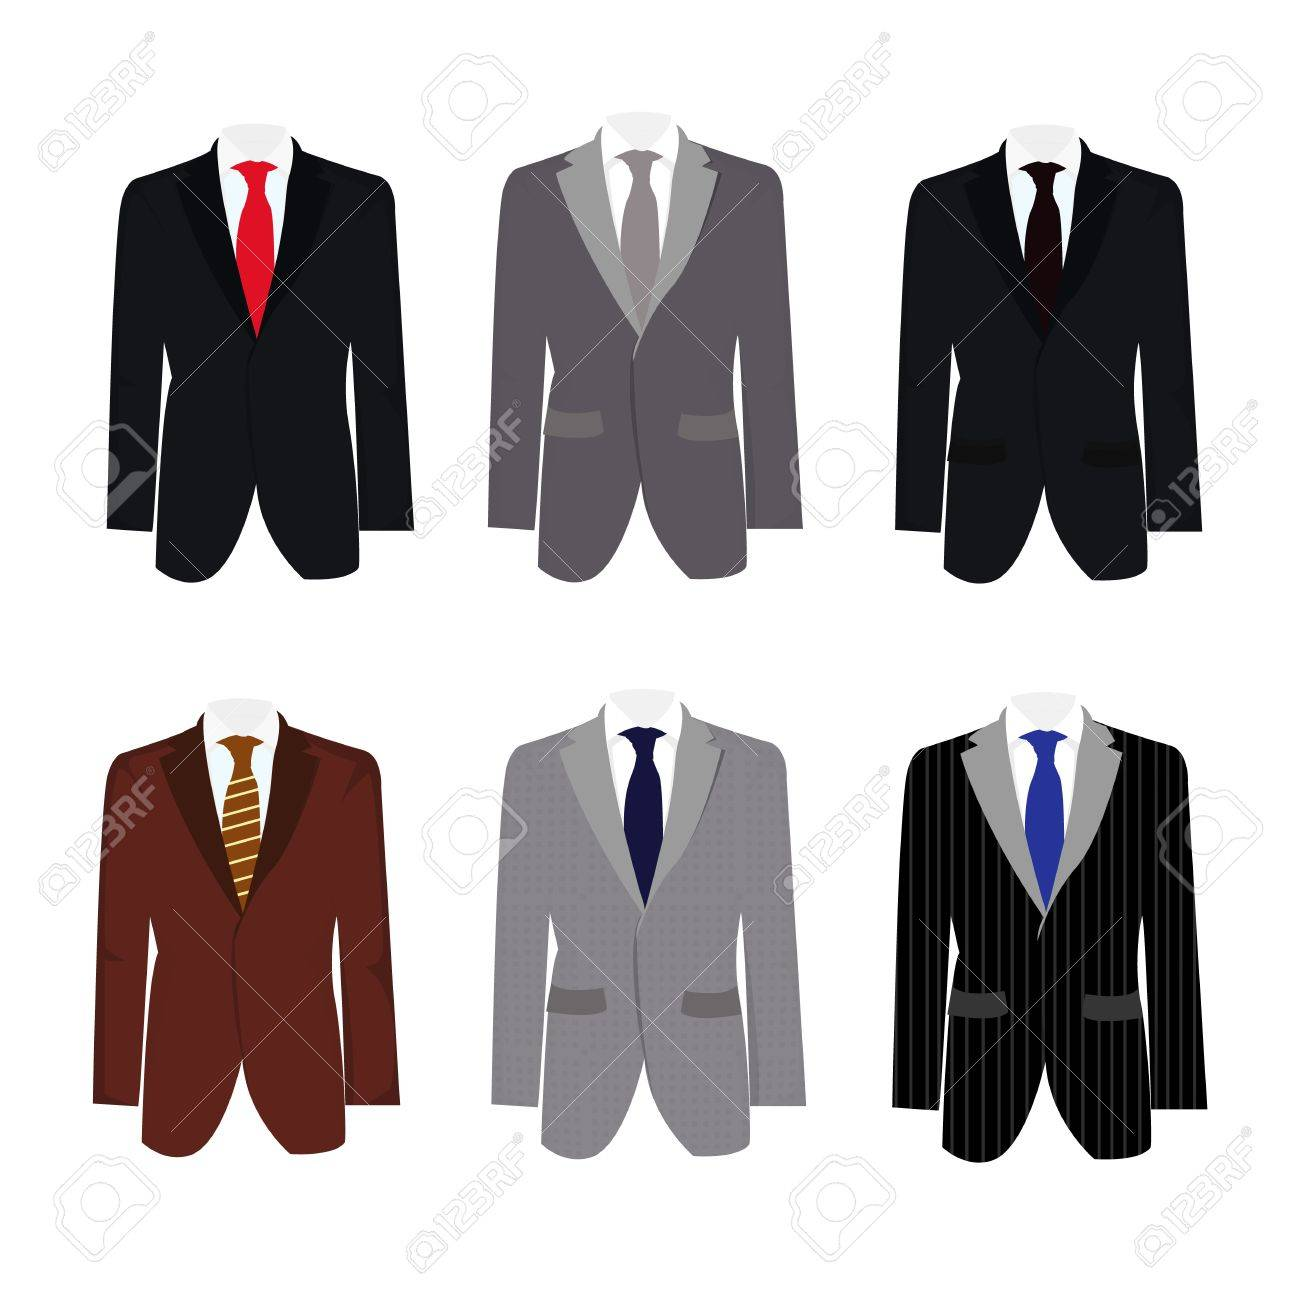 set of 6 illustration handsome business suit graphic